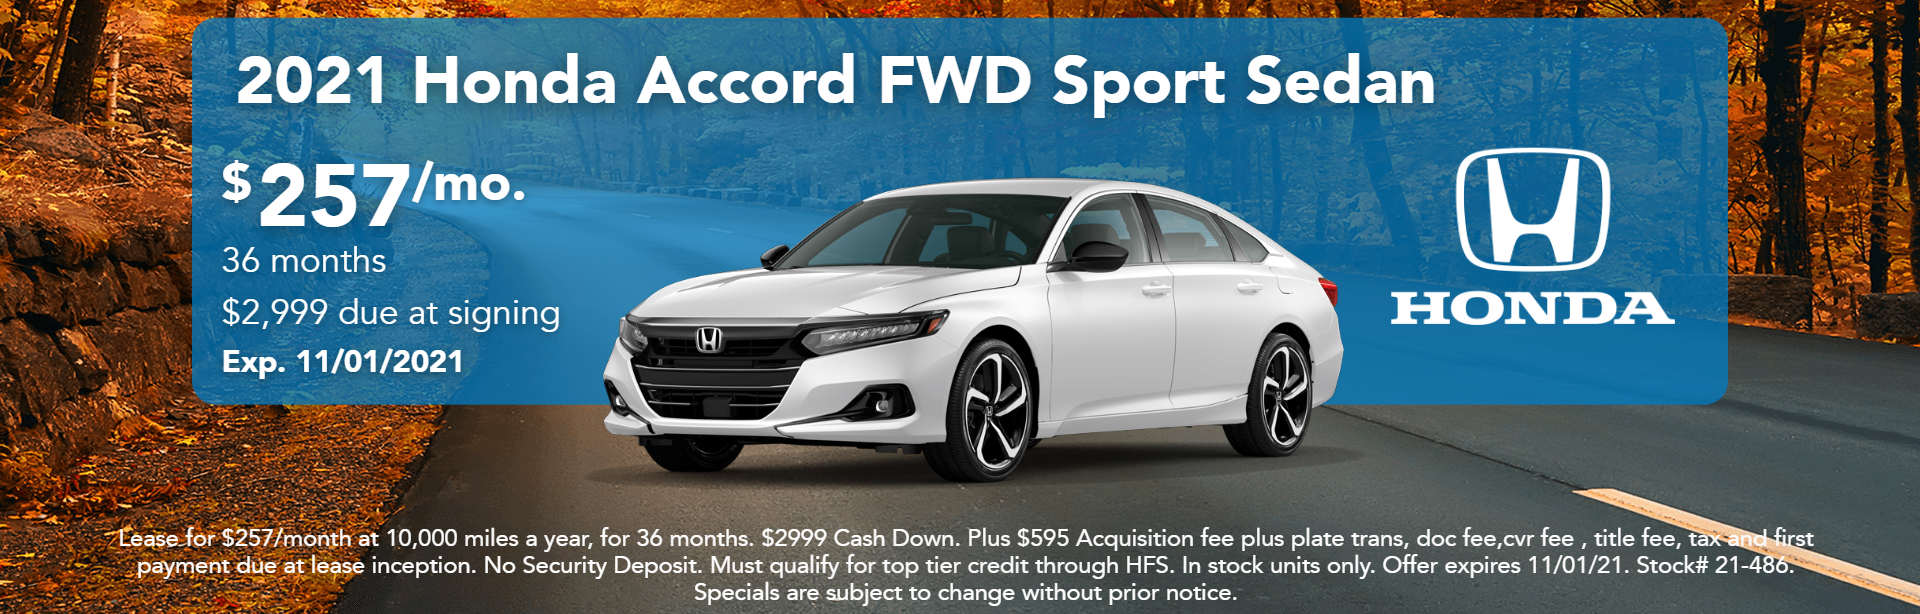 2021_Honda_Accord_Sport_Tue Oct 05 2021 13_18_56 GMT-0400 (Eastern Daylight Time)